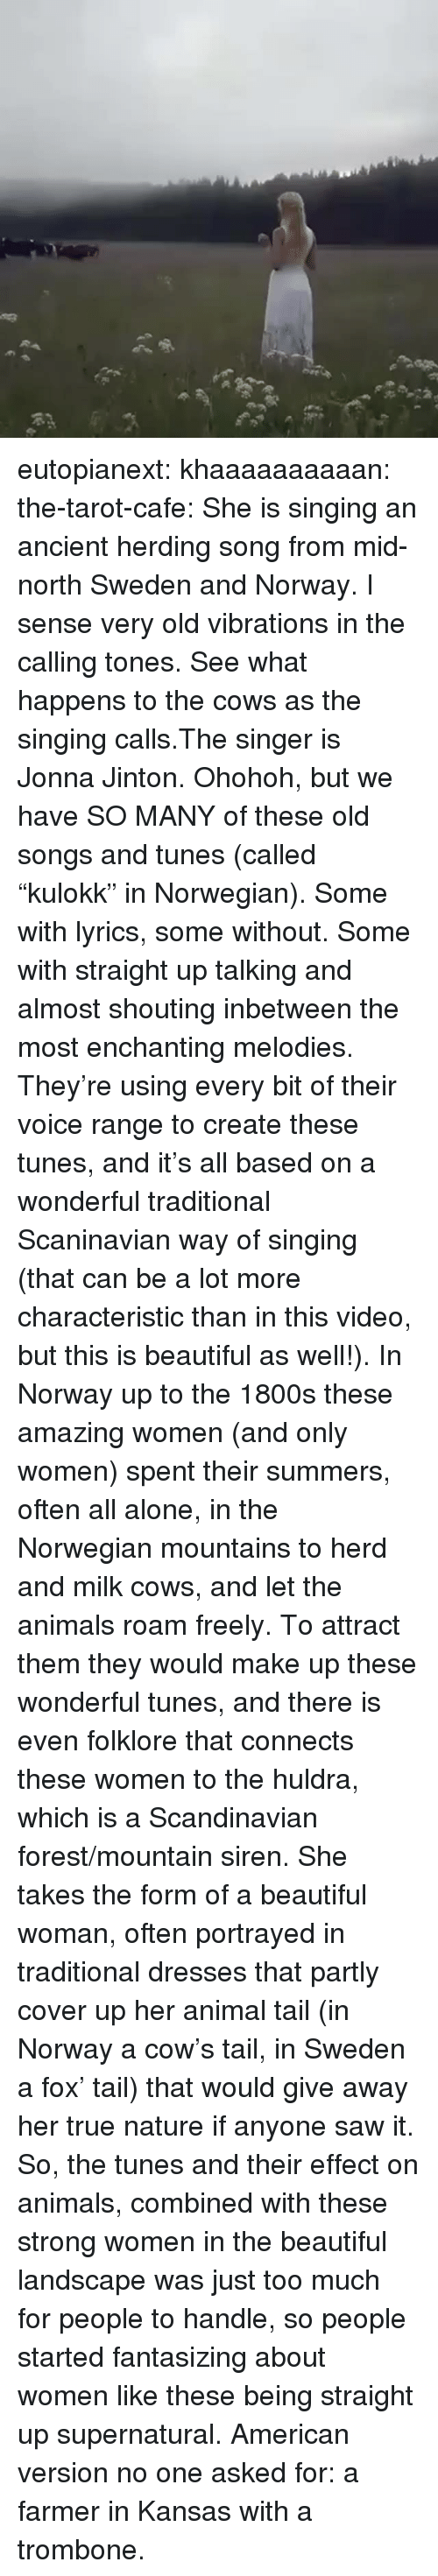 """tunes: eutopianext:  khaaaaaaaaaan:  the-tarot-cafe:   She is singing an ancient herding song from mid-north Sweden and Norway. I sense very old vibrations in the calling tones. See what happens to the cows as the singing calls.The singer is Jonna Jinton.   Ohohoh, but we have SO MANY of these old songs and tunes (called """"kulokk"""" in Norwegian). Some with lyrics, some without. Some with straight up talking and almost shouting inbetween the most enchanting melodies. They're using every bit of their voice range to create these tunes, and it's all based on a wonderful traditional Scaninavian way of singing (that can be a lot more characteristic than in this video, but this is beautiful as well!).  In Norway up to the 1800s these amazing women (and only women) spent their summers, often all alone, in the Norwegian mountains to herd and milk cows, and let the animals roam freely. To attract them they would make up these wonderful tunes, and there is even folklore that connects these women to the huldra, which is a Scandinavian forest/mountain siren. She takes the form of a beautiful woman, often portrayed in traditional dresses that partly cover up her animal tail (in Norway a cow's tail, in Sweden a fox' tail) that would give away her true nature if anyone saw it.  So, the tunes and their effect on animals, combined with these strong women in the beautiful landscape was just too much for people to handle, so people started fantasizing about women like these being straight up supernatural.  American version no one asked for: a farmer  in Kansas   with a trombone."""